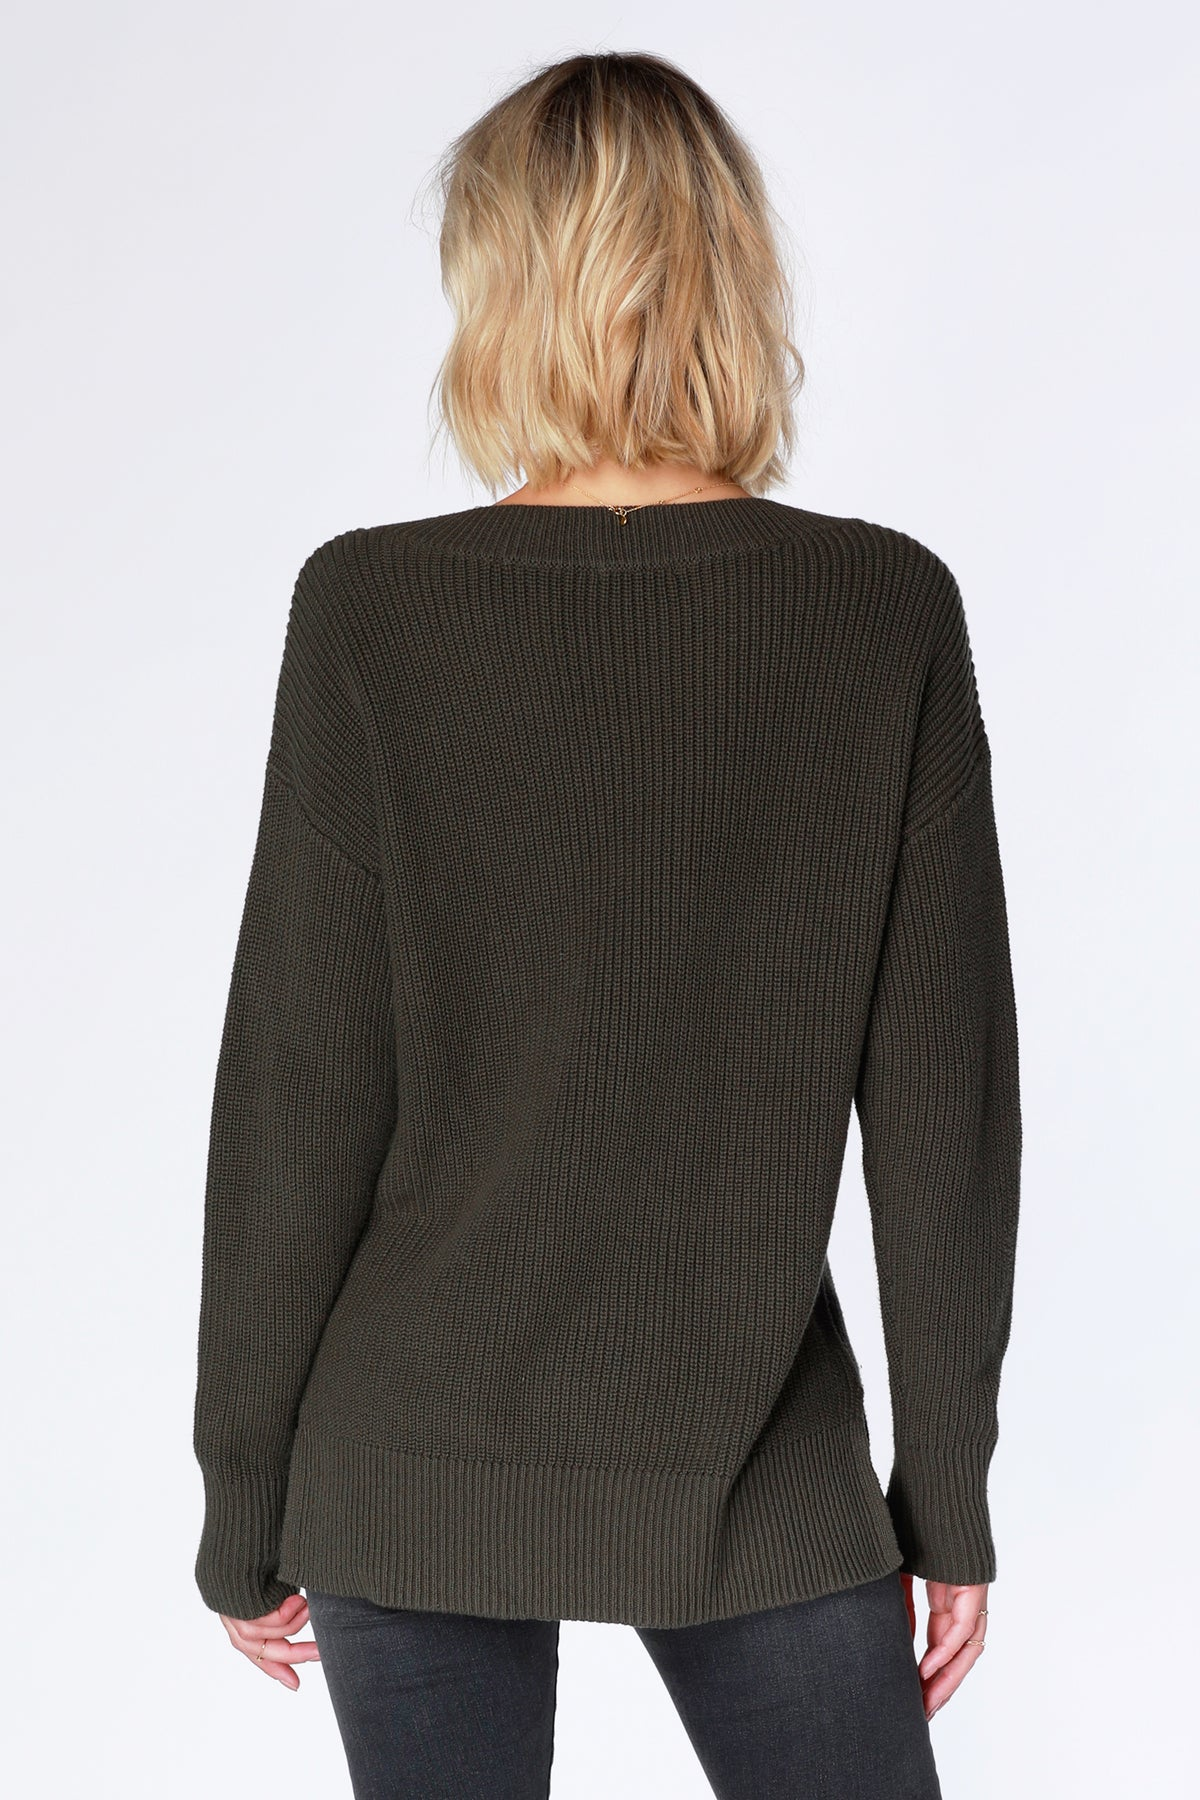 Boyfriend Sweater - bobi Los Angeles